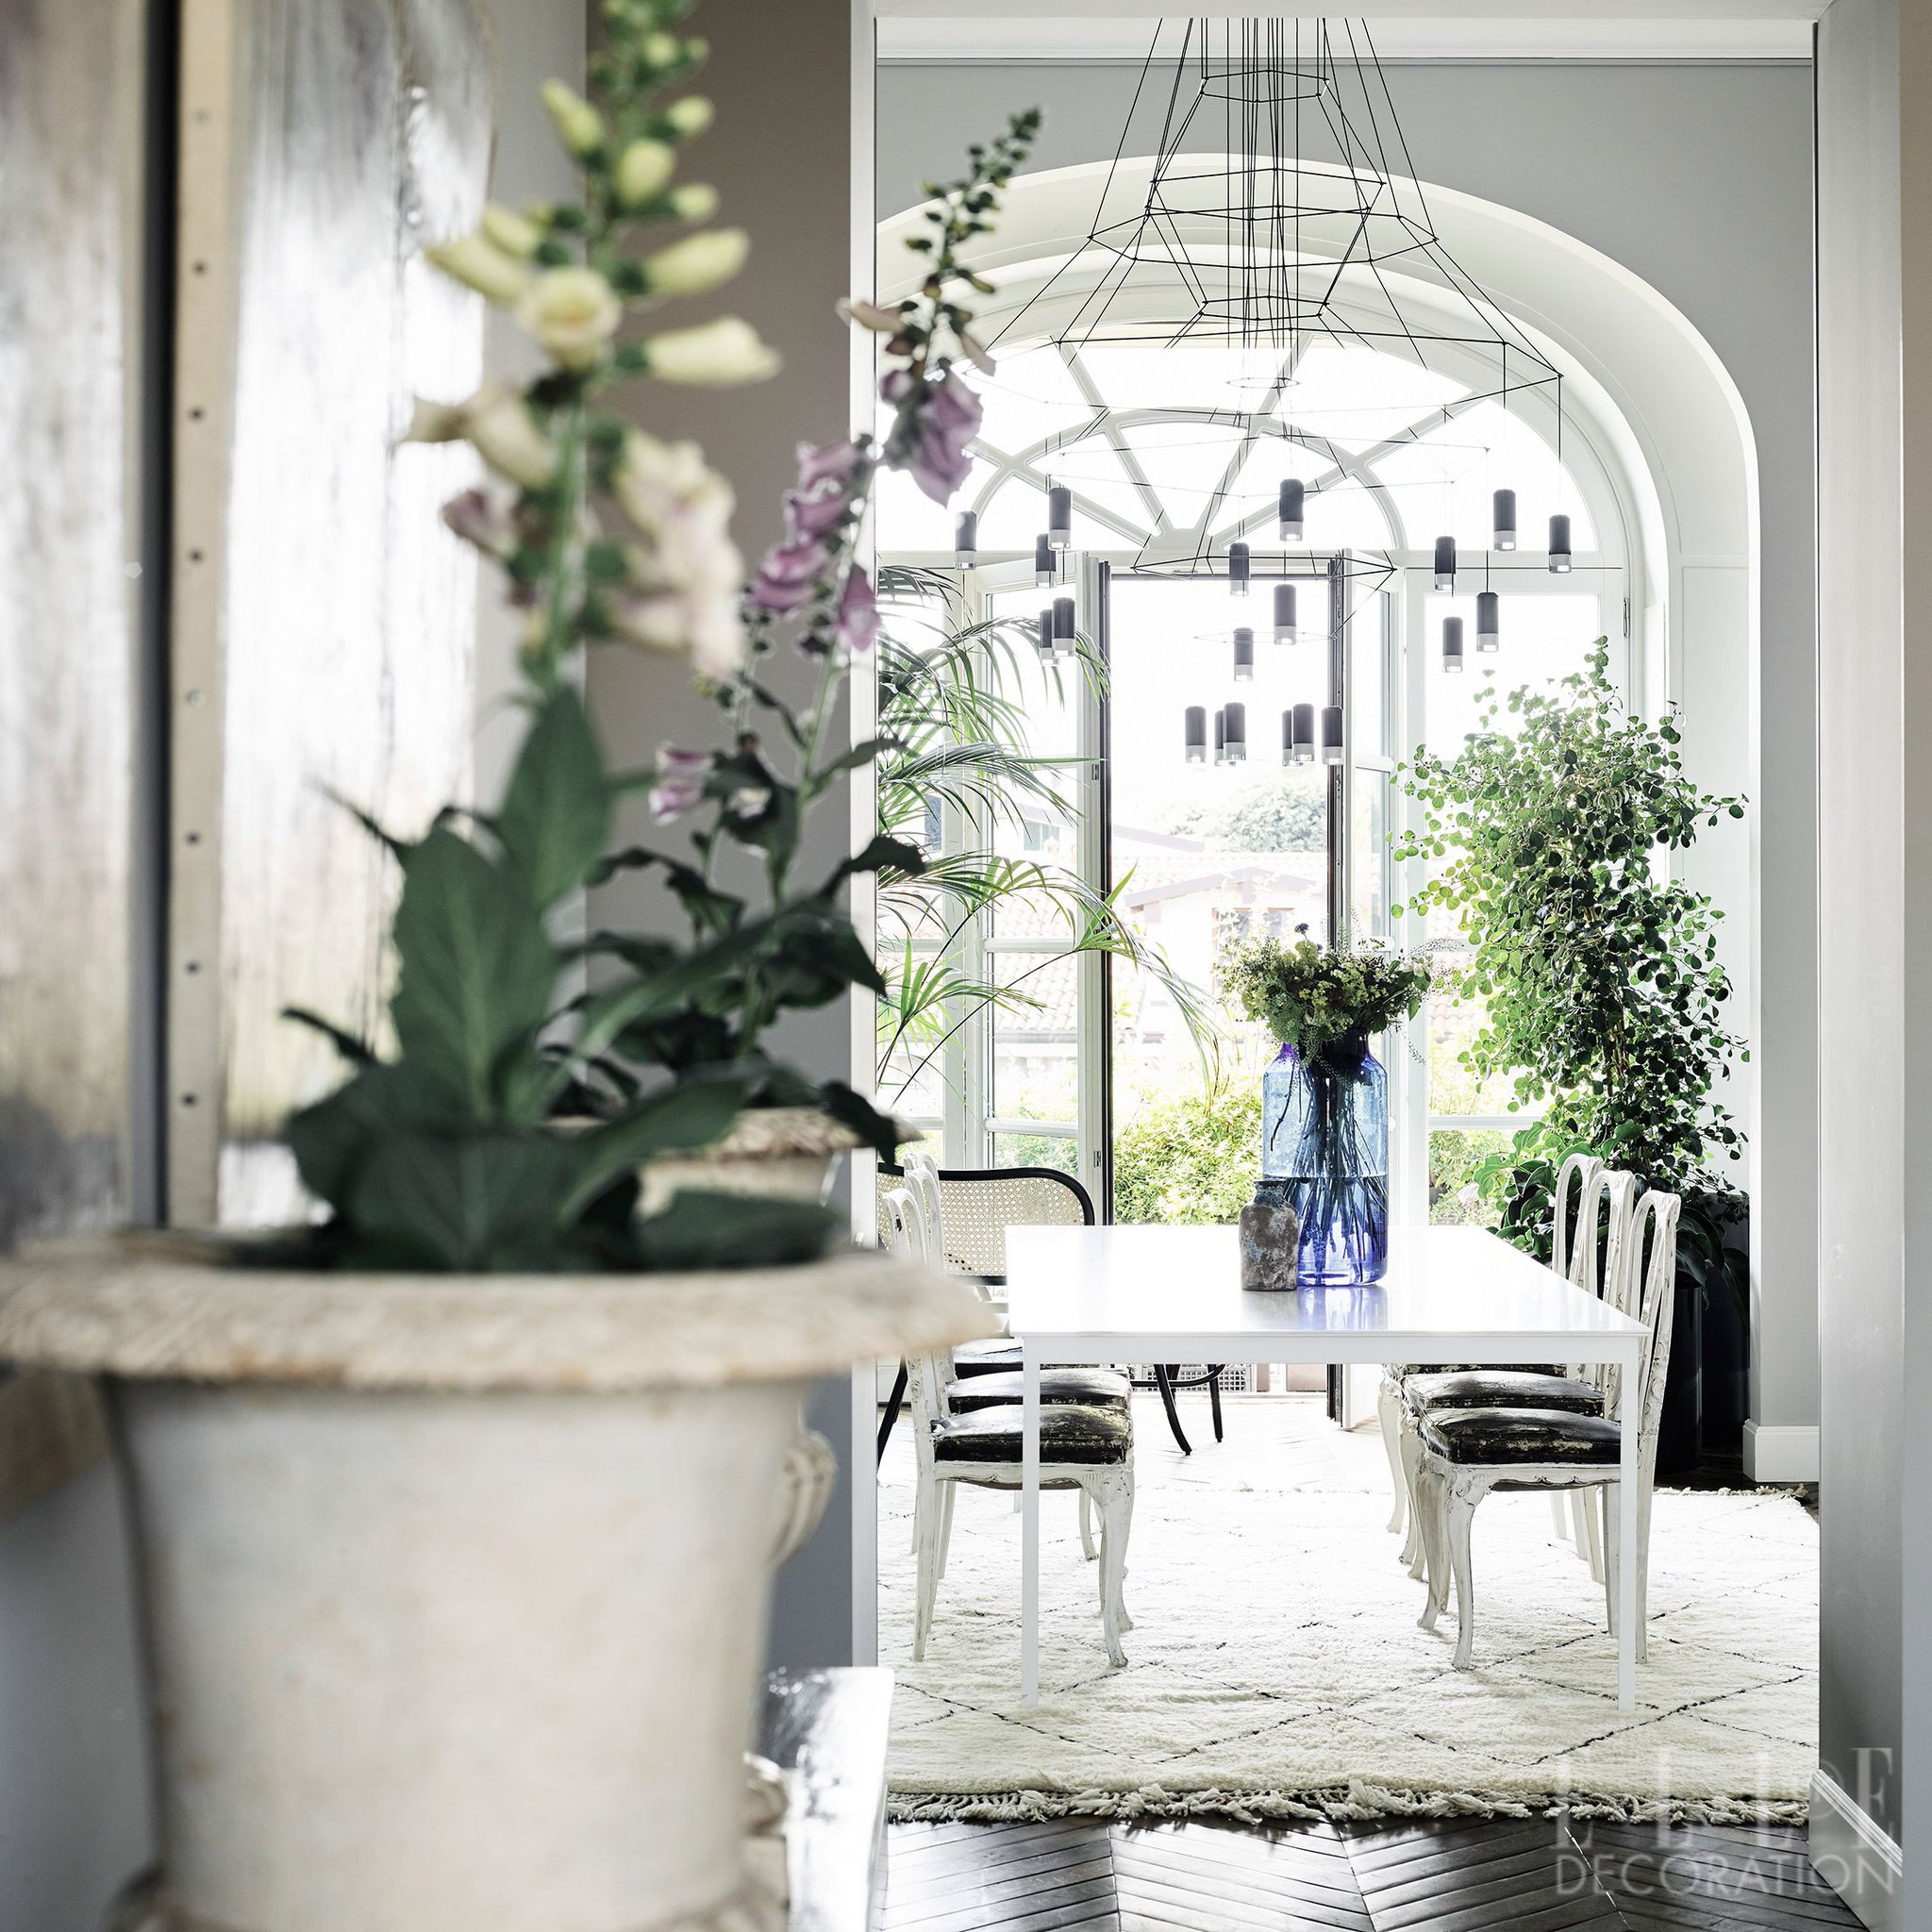 Milan: Plants bring life to this elegant apartment and create a city oasis on the balcony #EDUKSeptember16 https://t.co/cEQR4Z6BL5